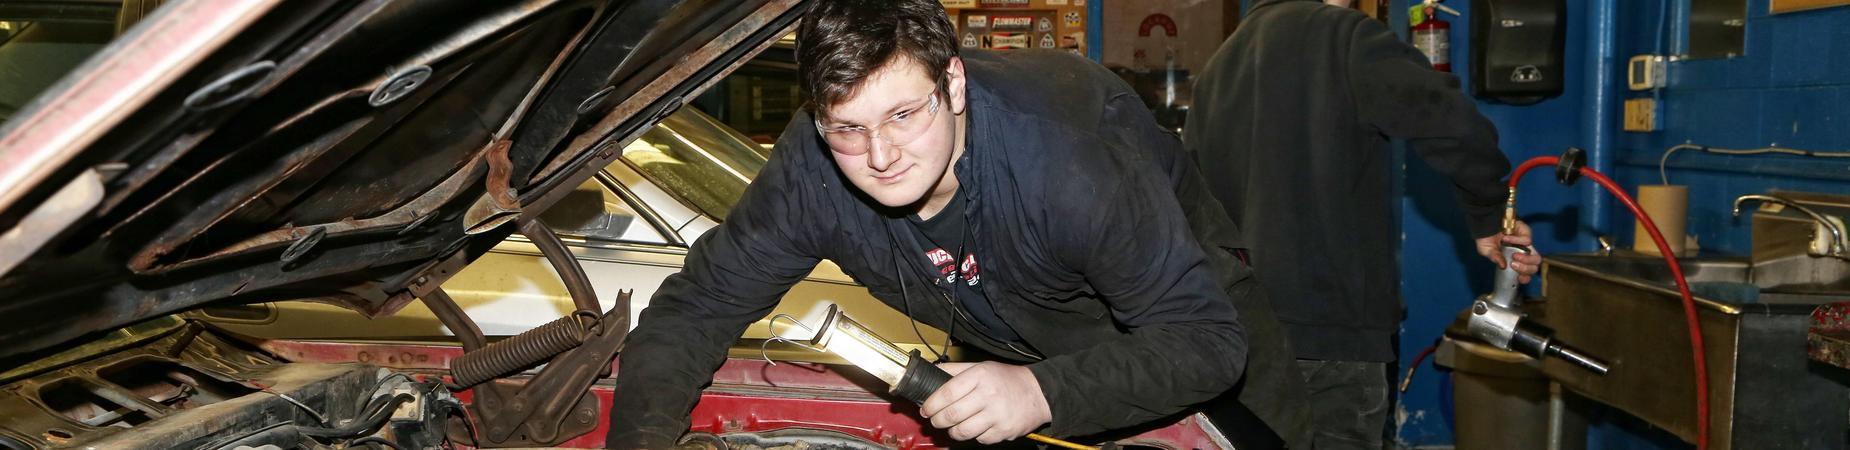 LHS student working on a car in auto shop